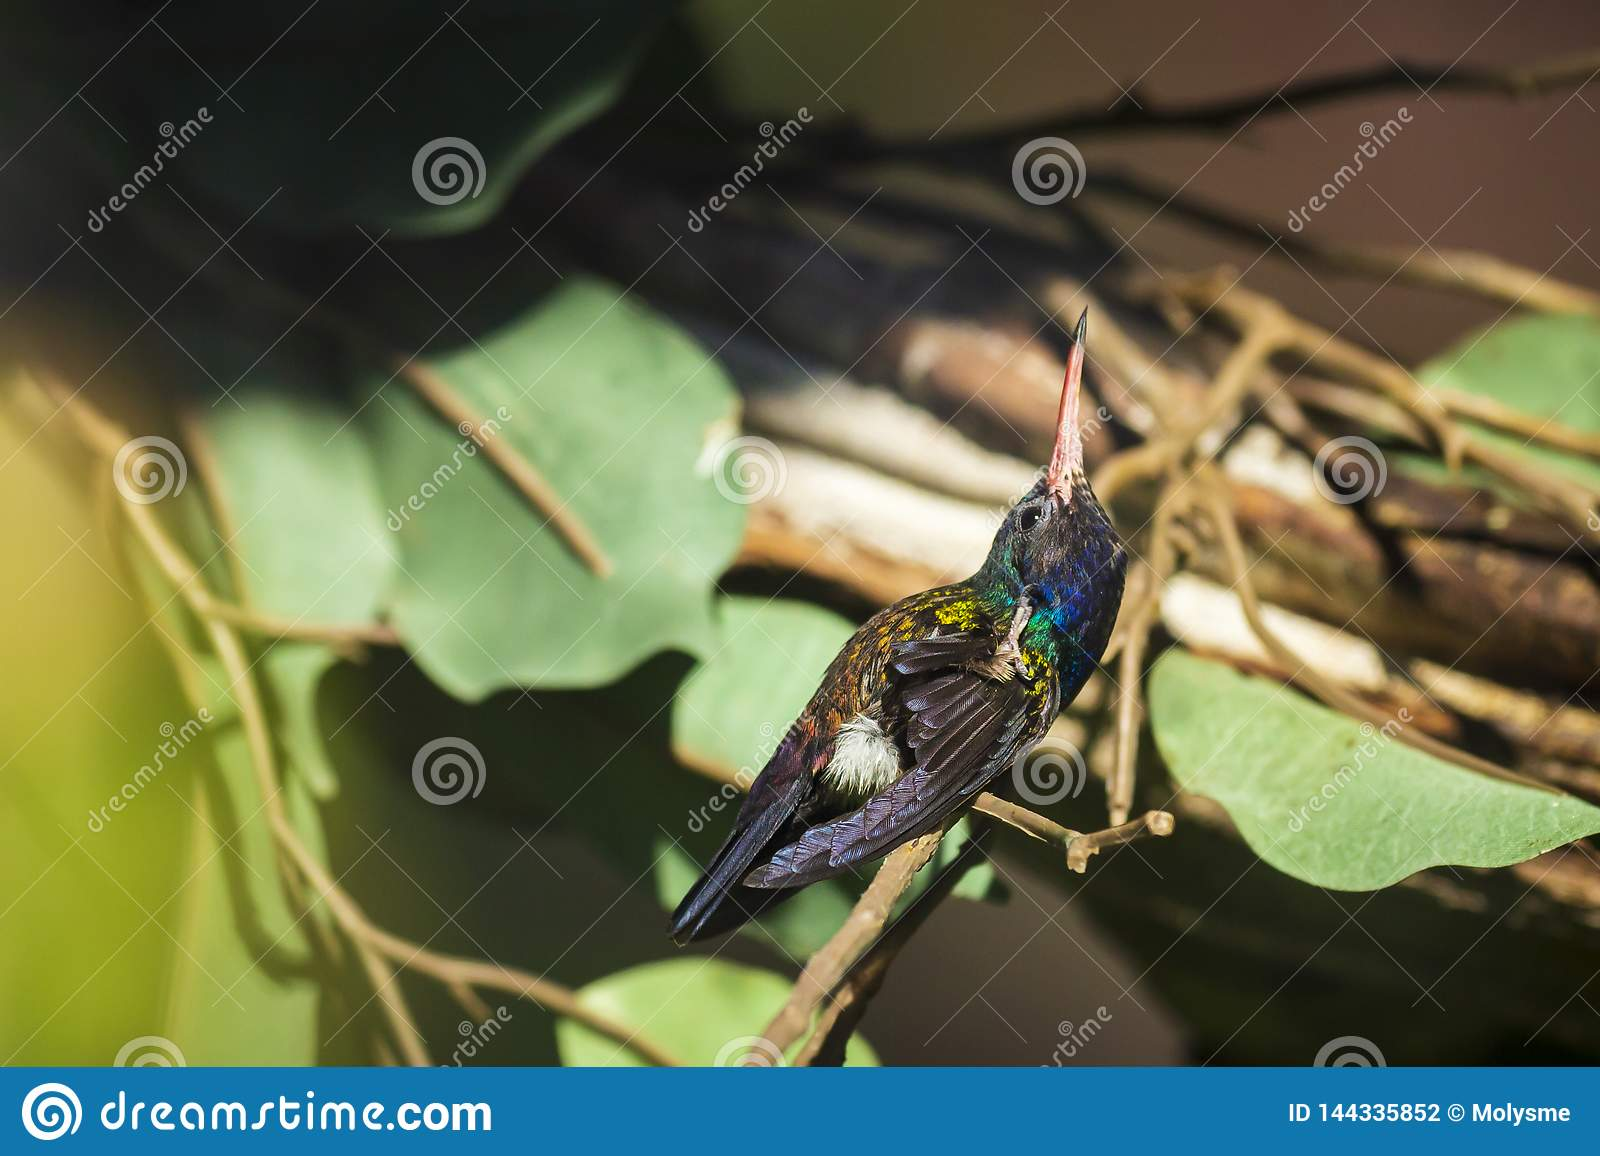 Male white-chinned sapphire Hylocharis cyanus, hummingbird perched on a branch